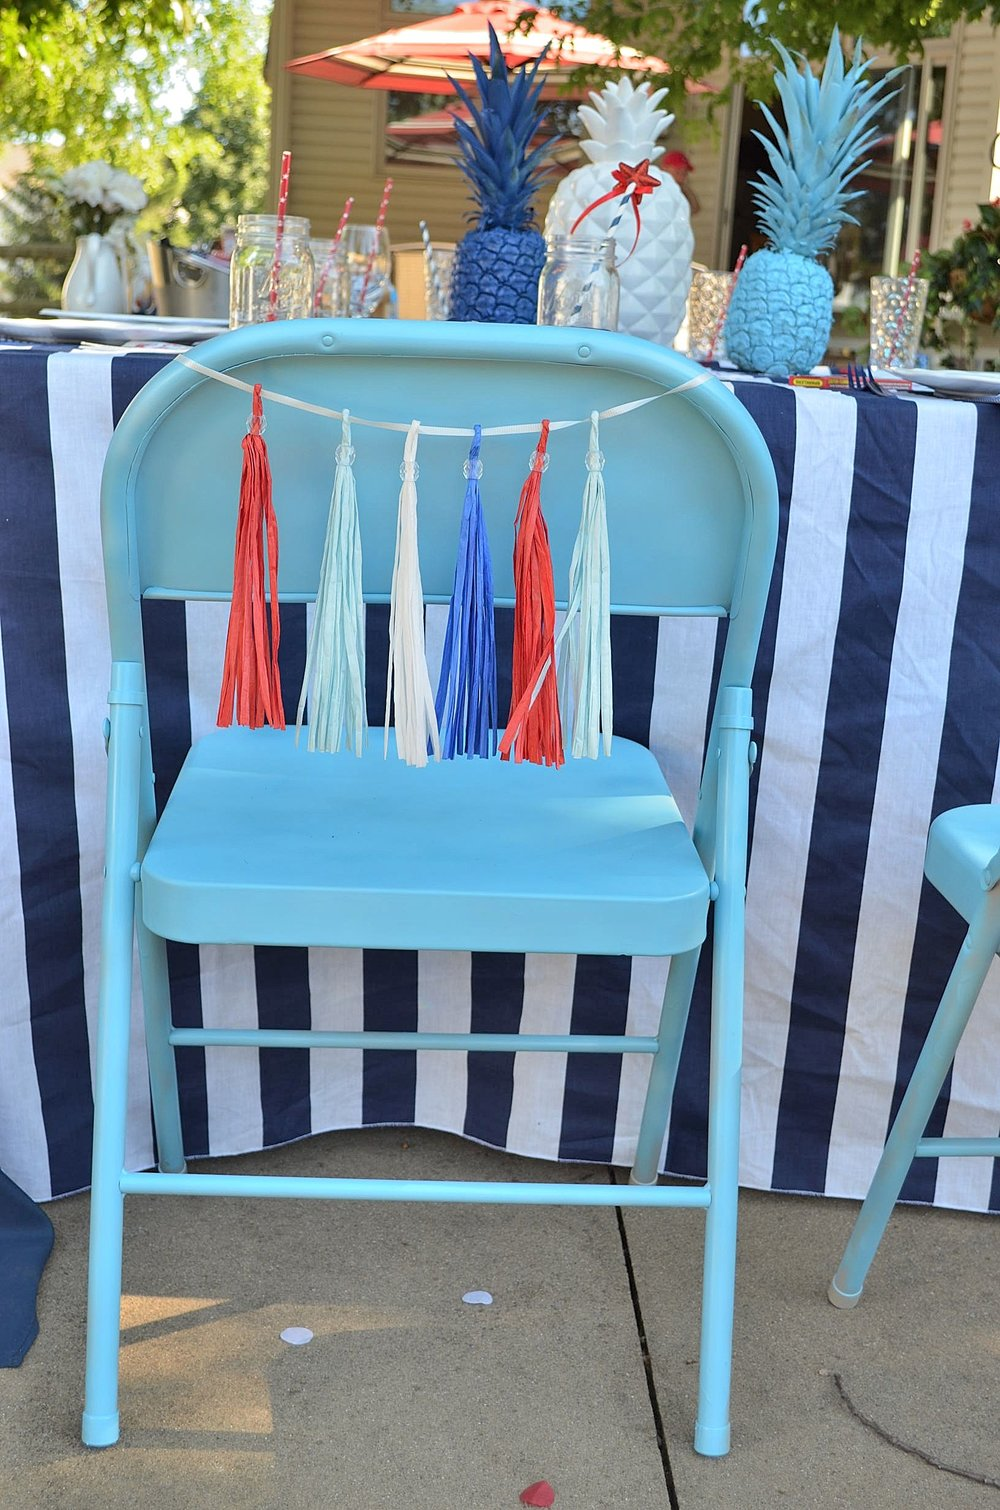 Fourth of July Party & Decor Ideas by Event Prep